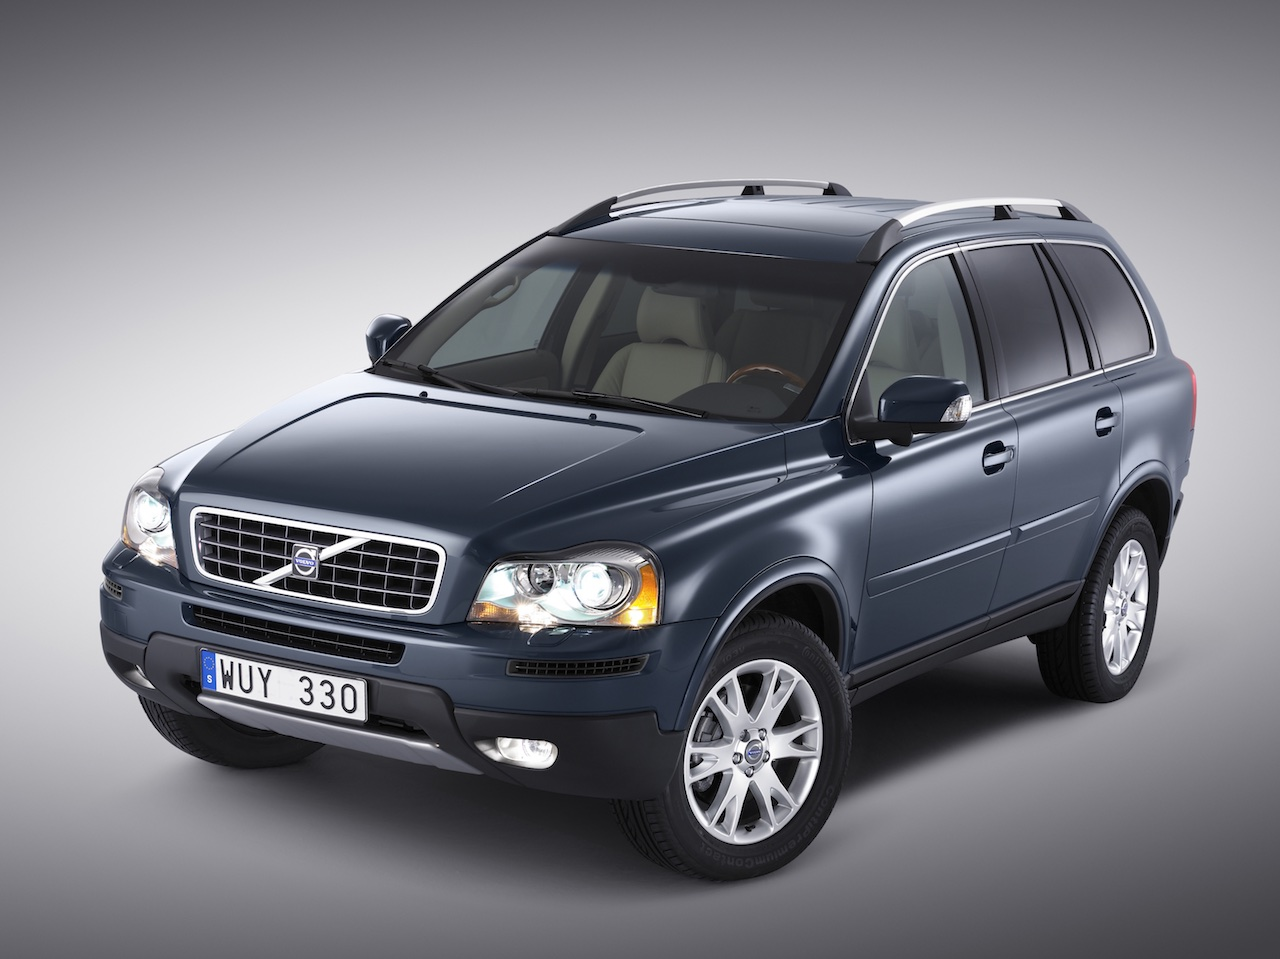 XC90 first generation